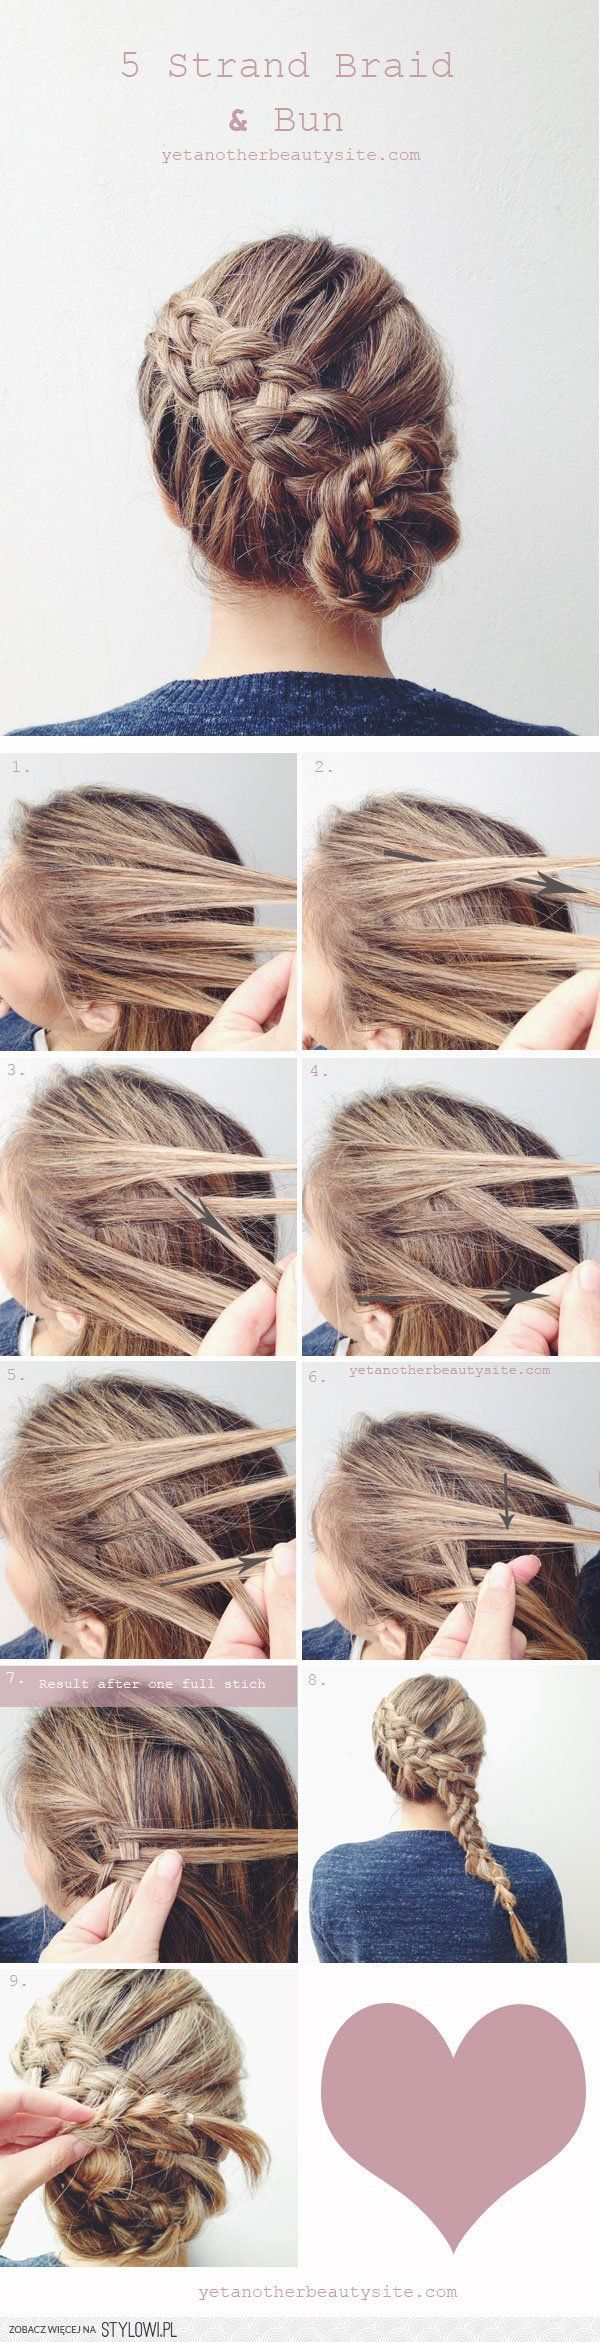 best hairstyles images on pinterest hairstyle ideas hair ideas